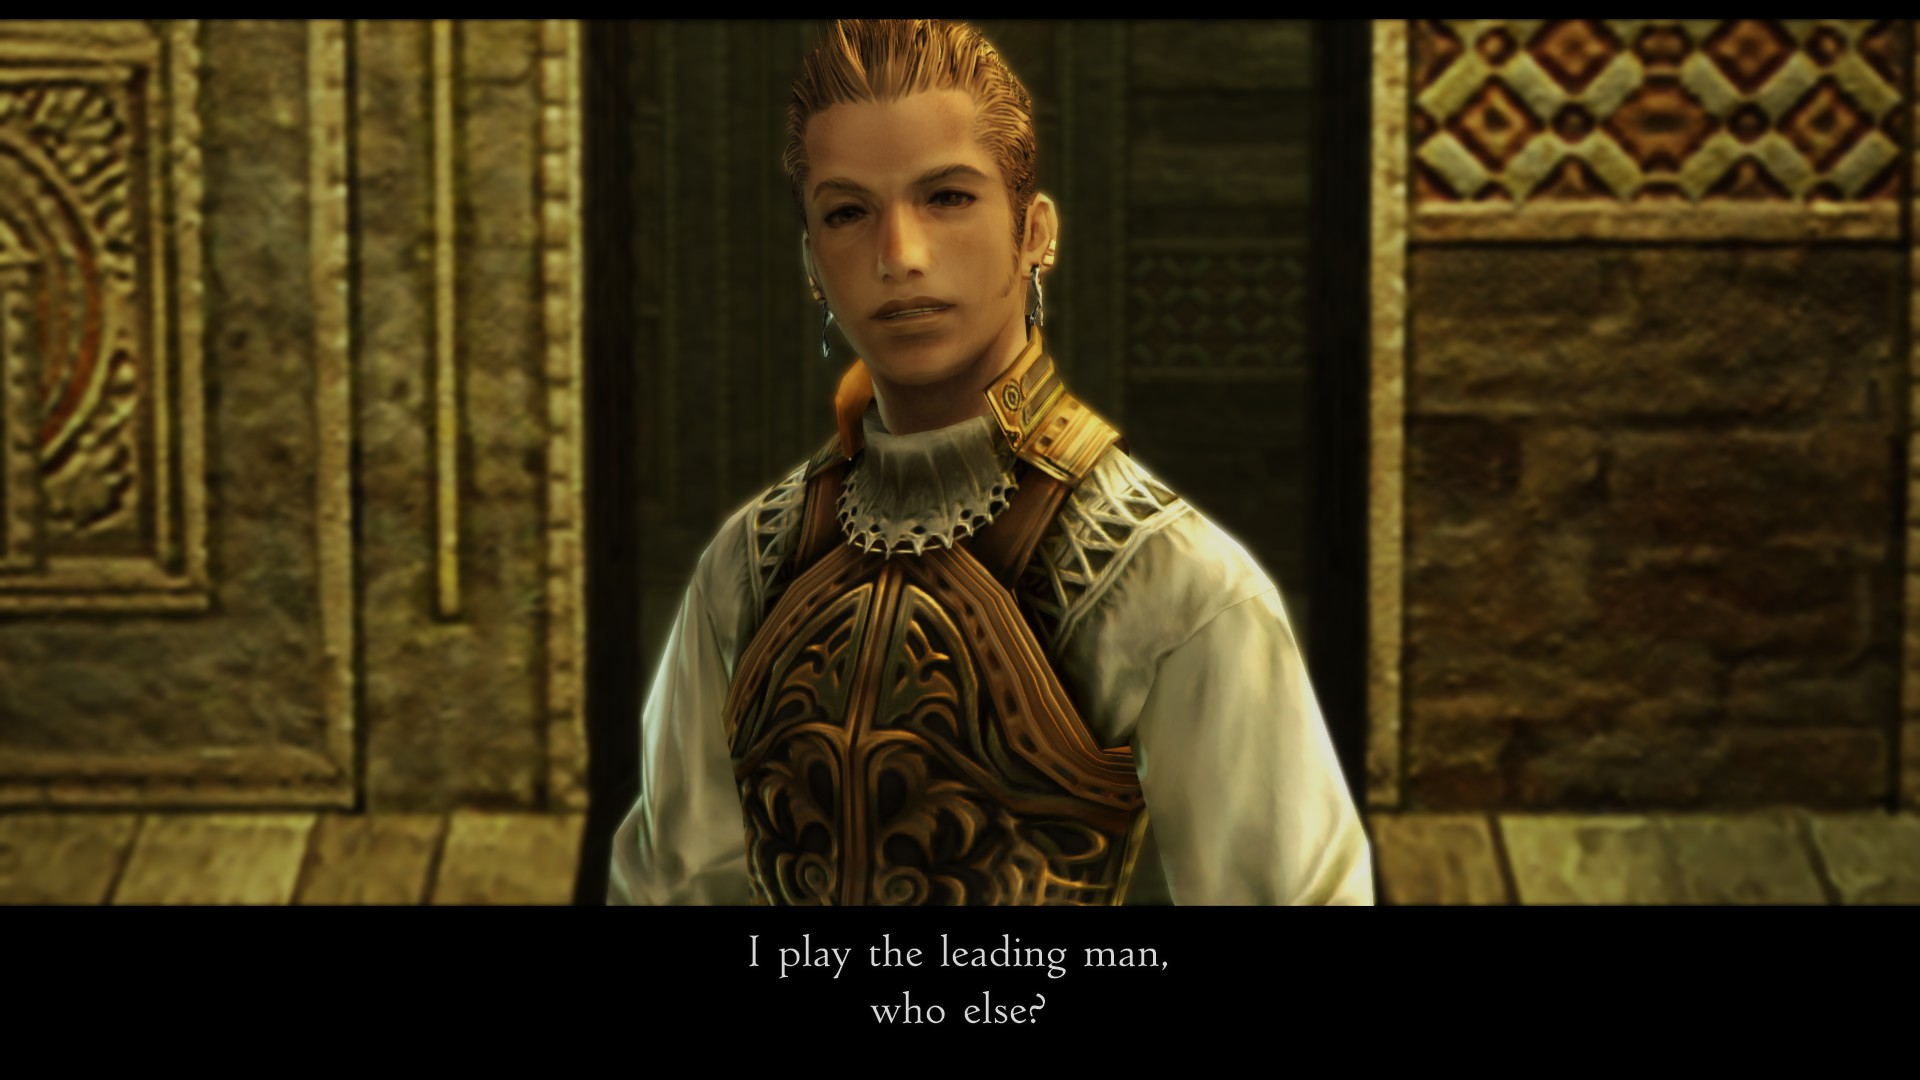 He's right. Vaan who?